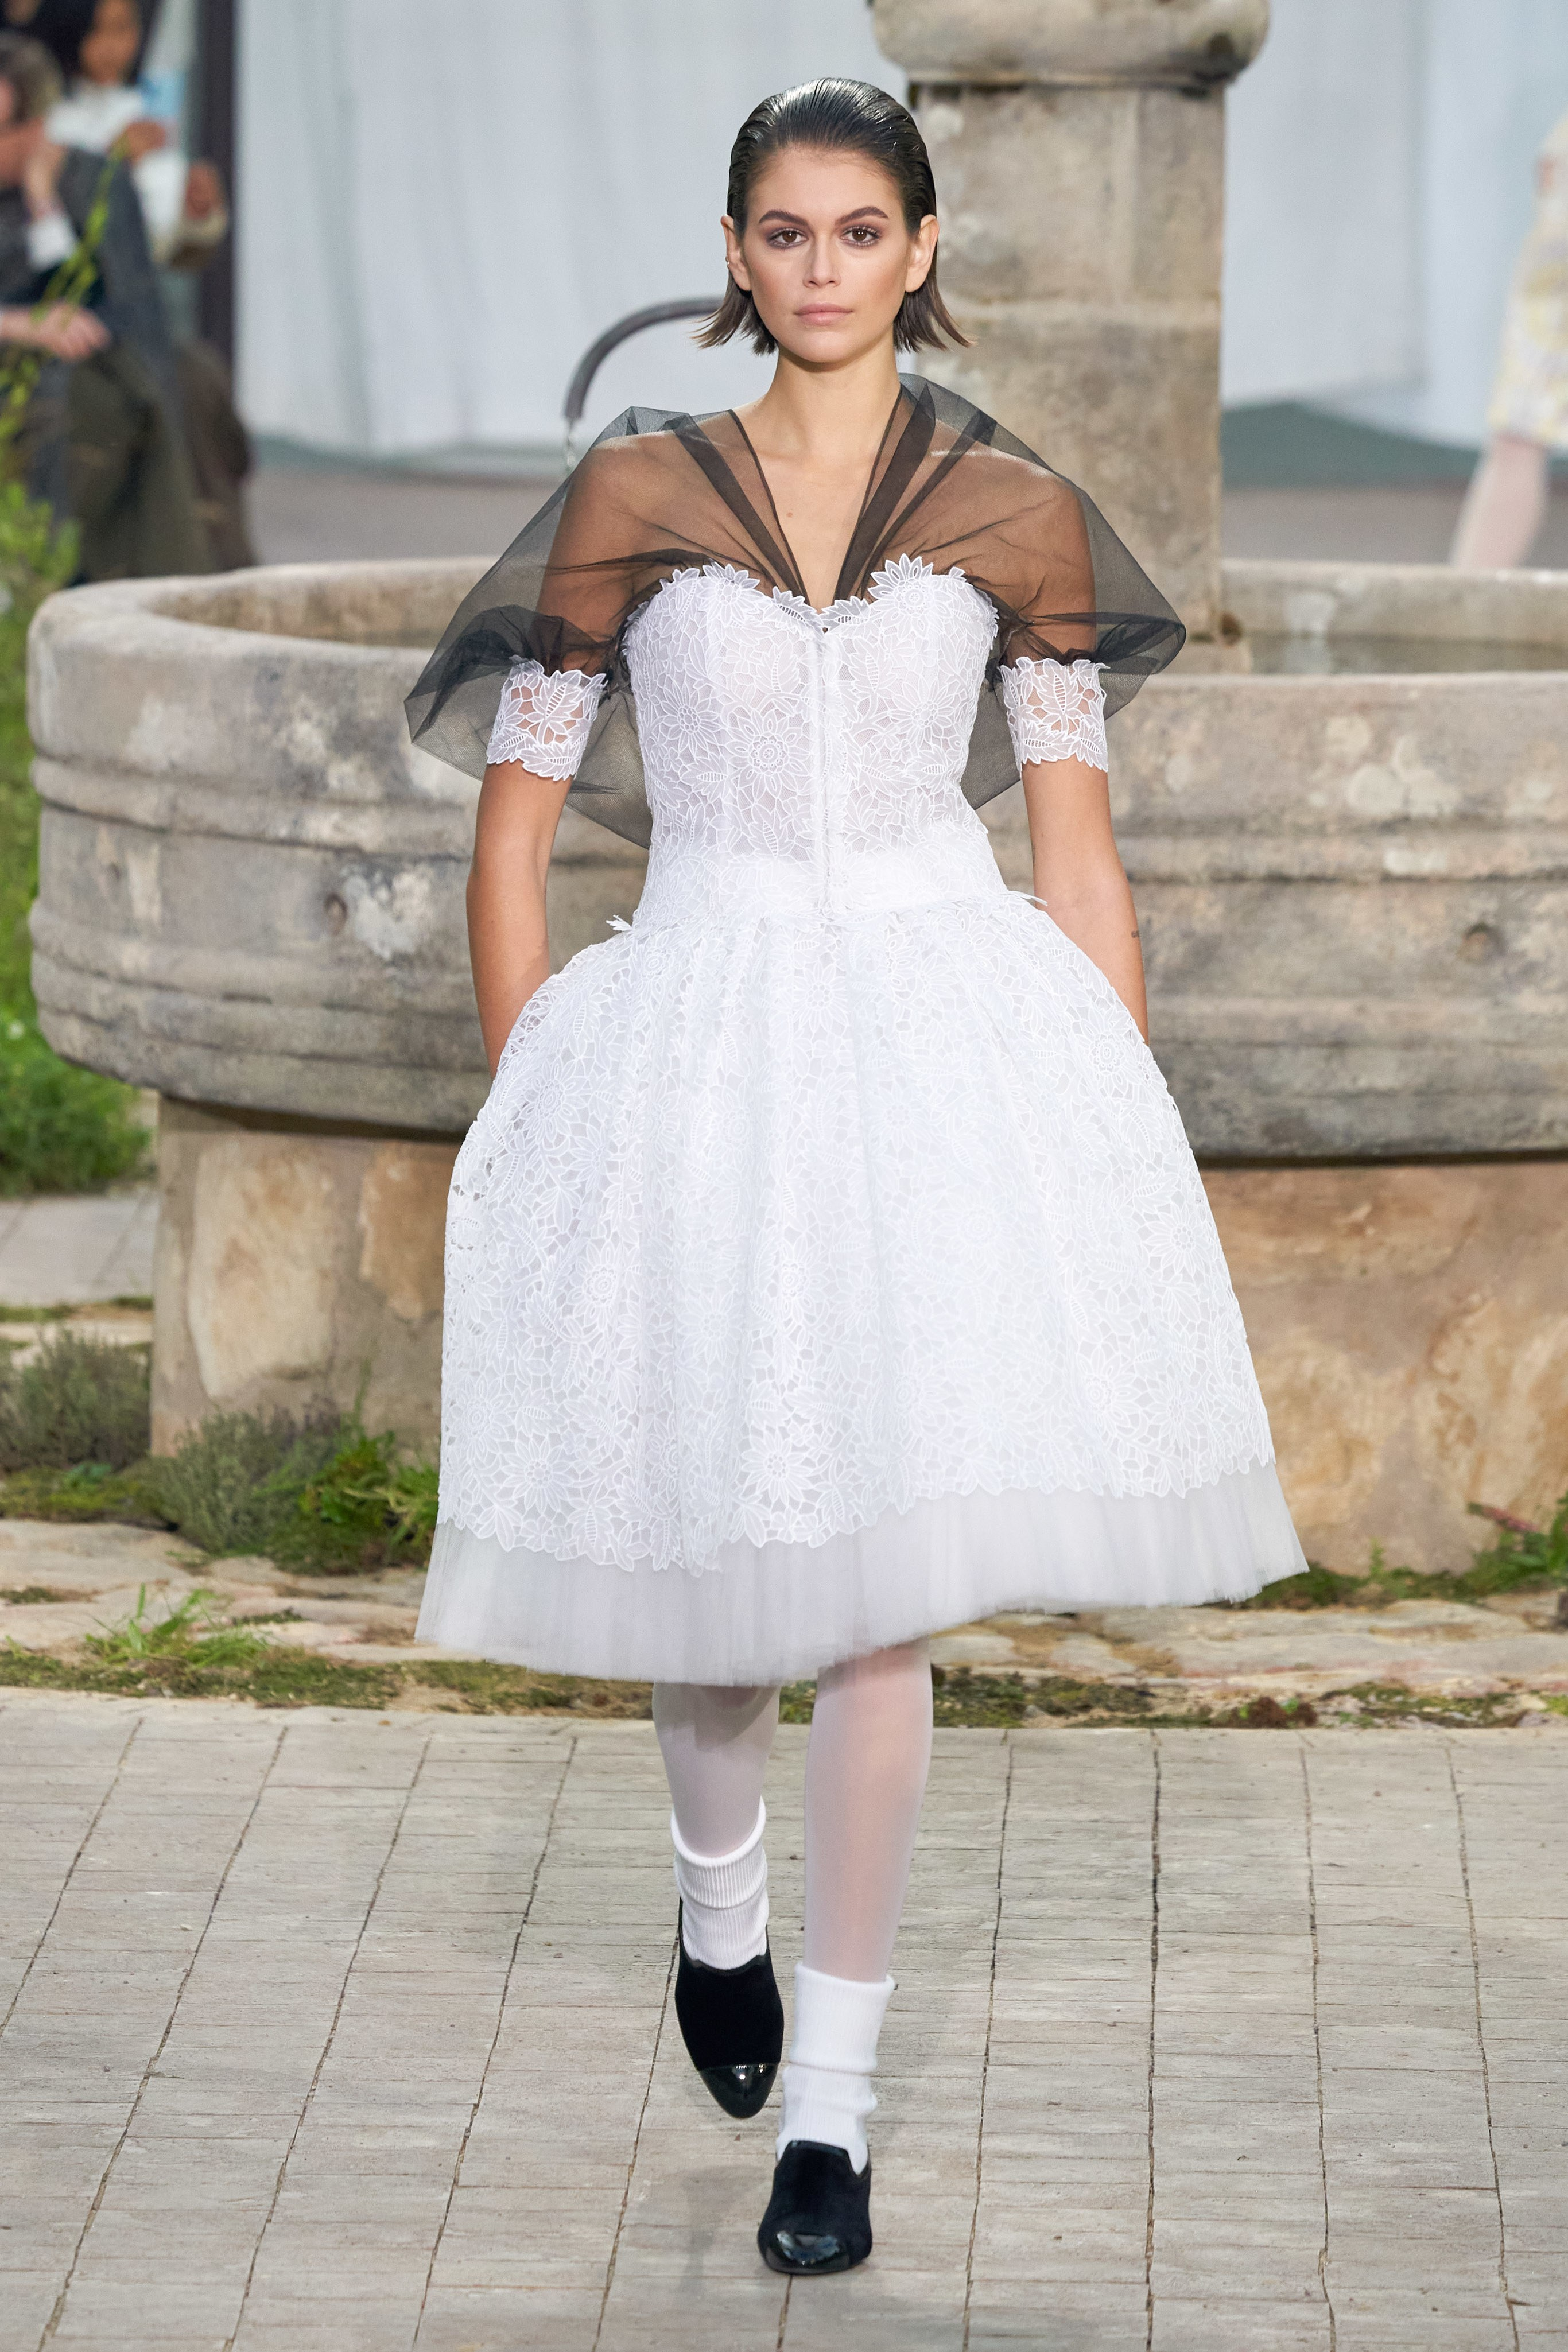 Chanel Spring Couture 2020